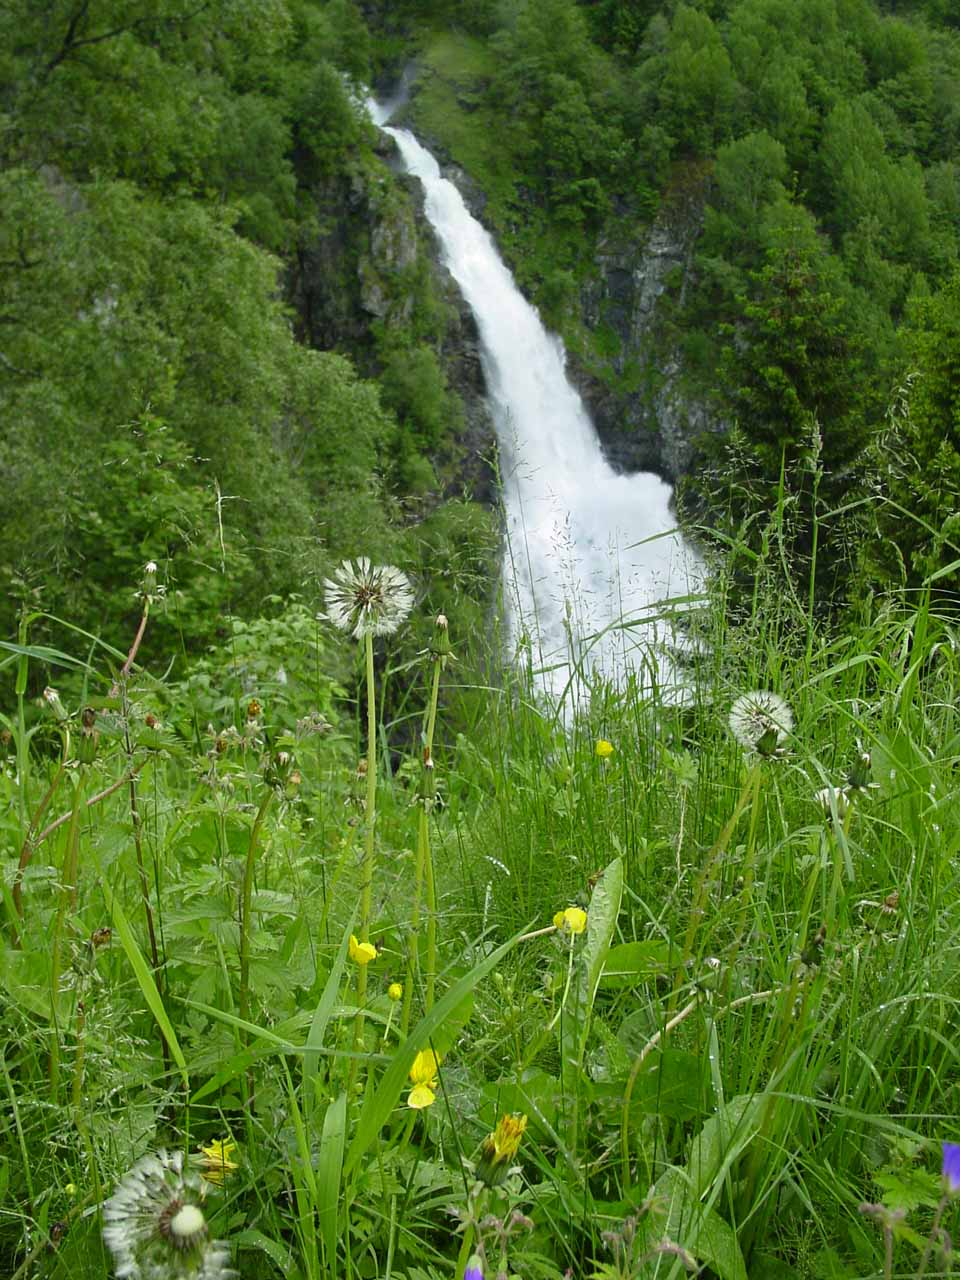 As we descended further down Stalheimskleiva, we started to see the impressive Sivlefossen